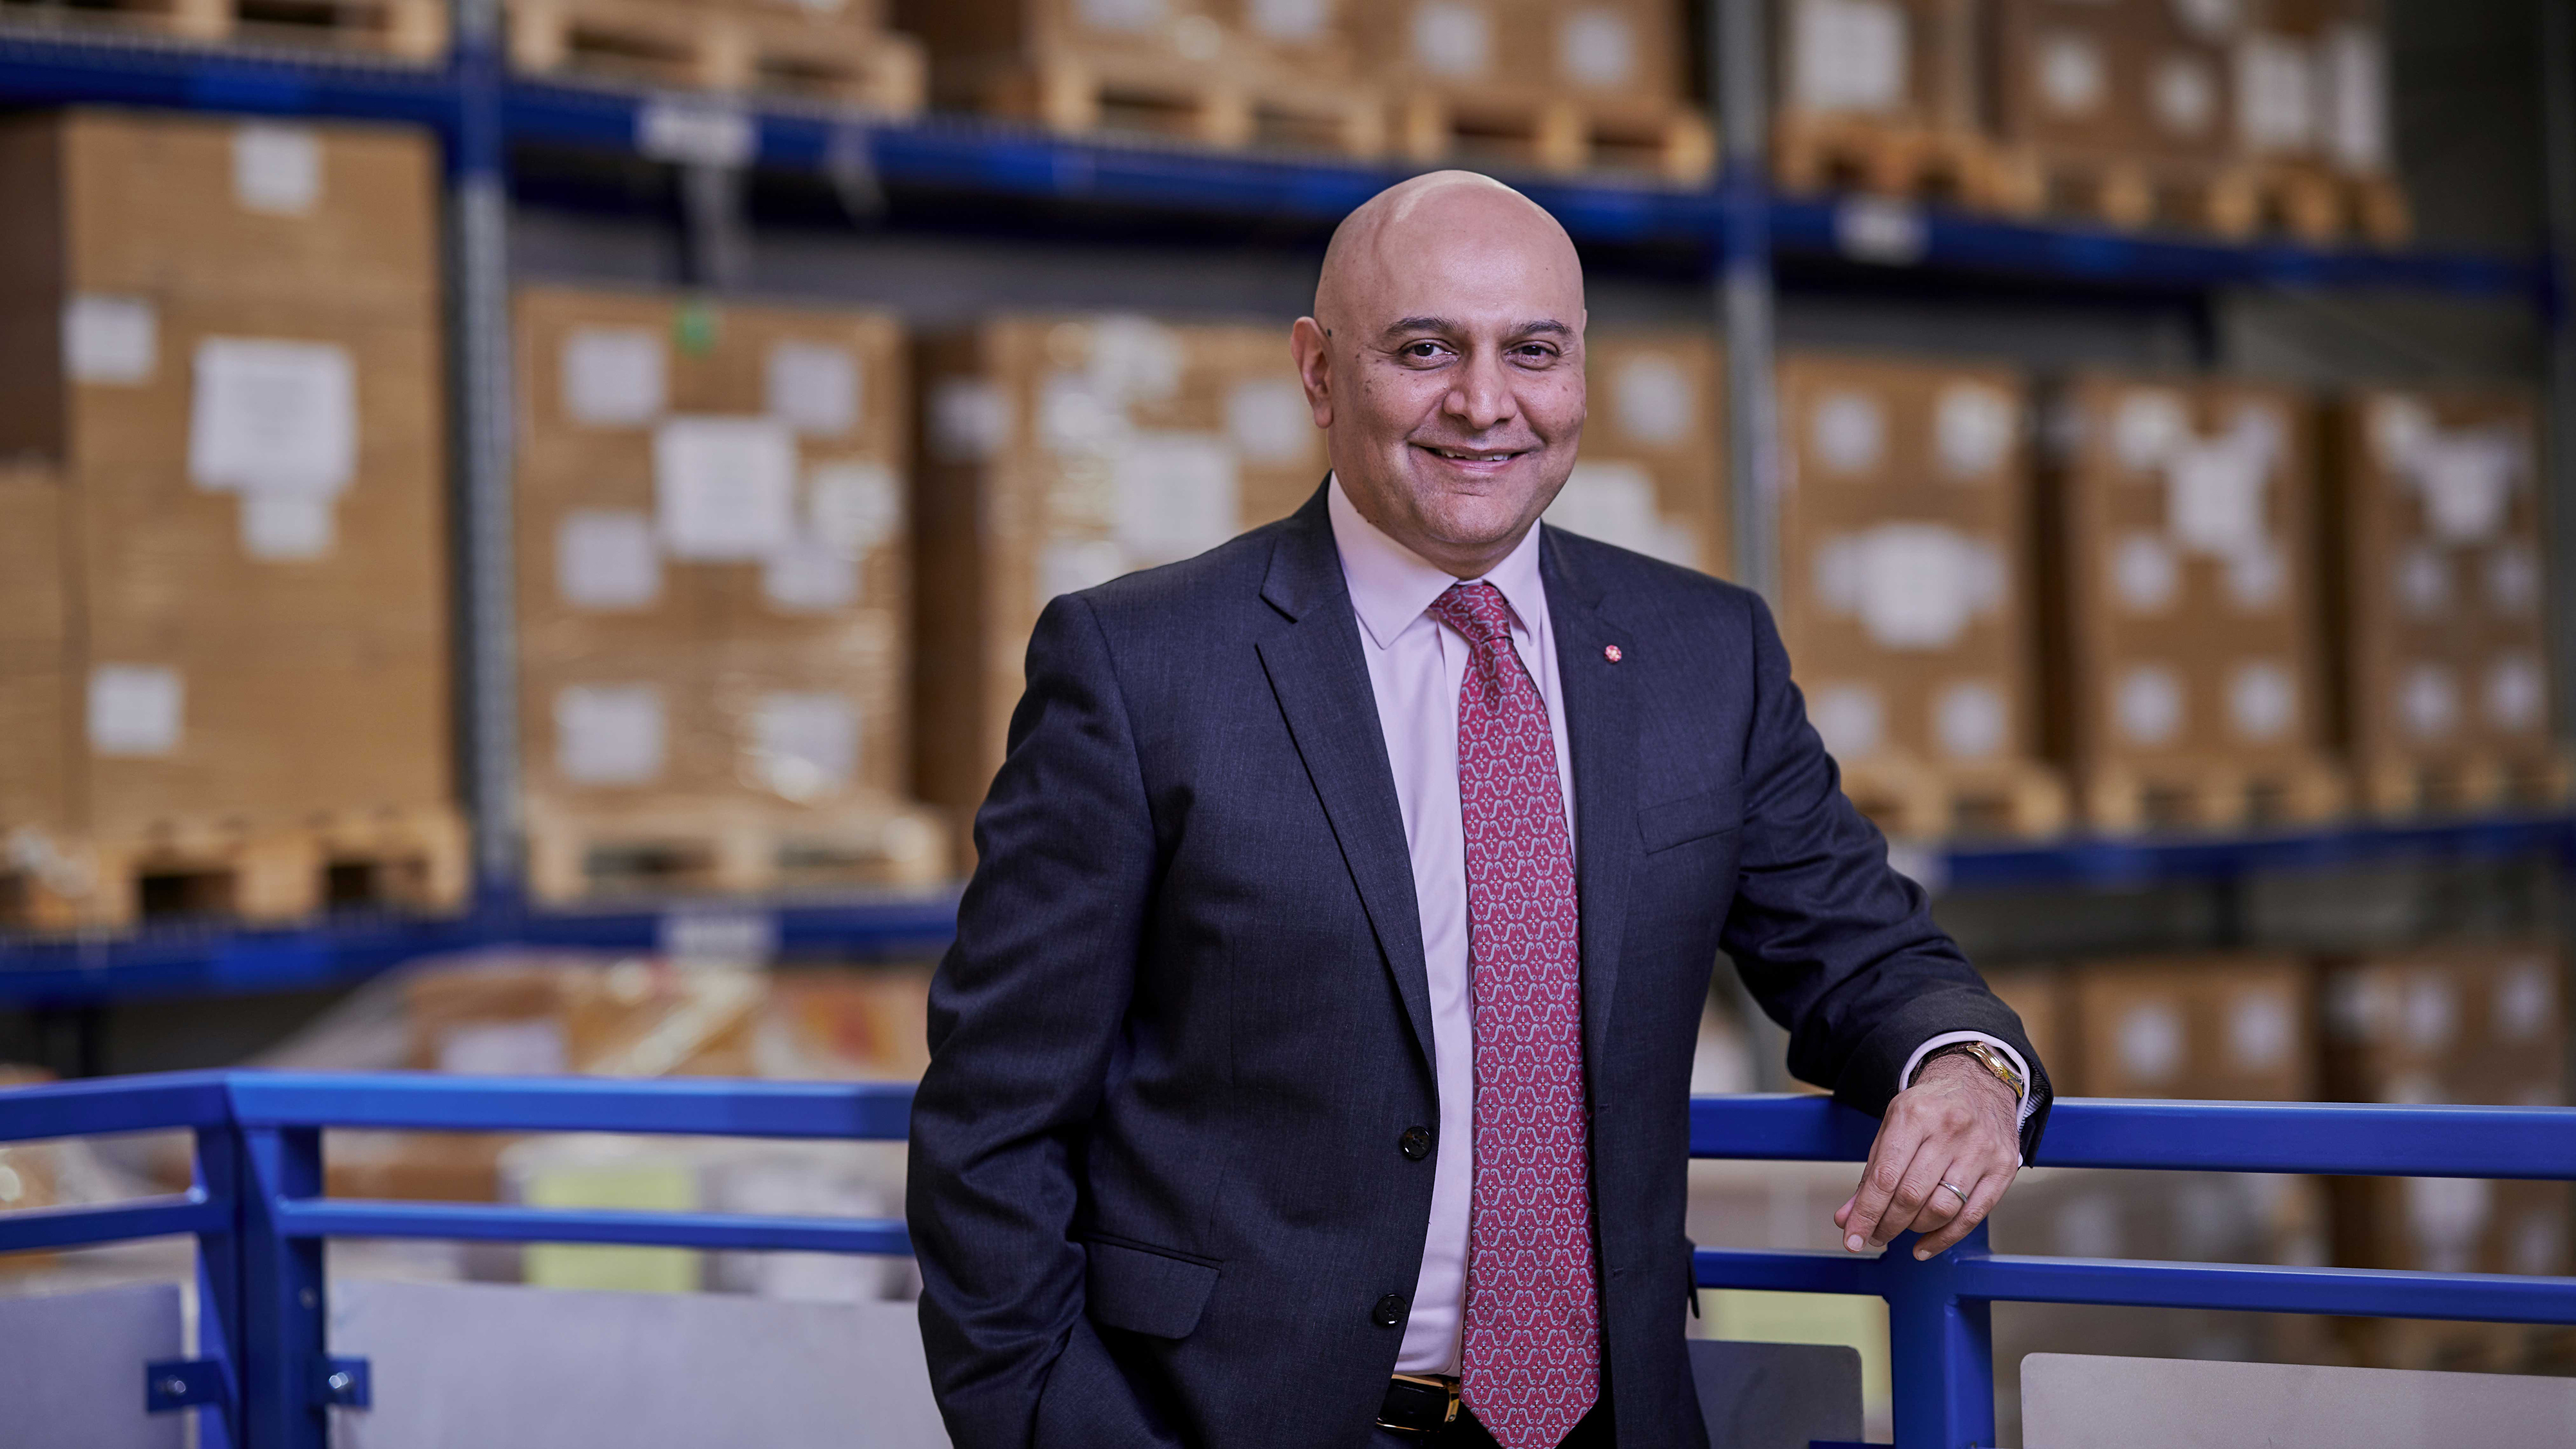 Dr Kotecha Named One of the UK's Top 50 Most Ambitious Business Leaders